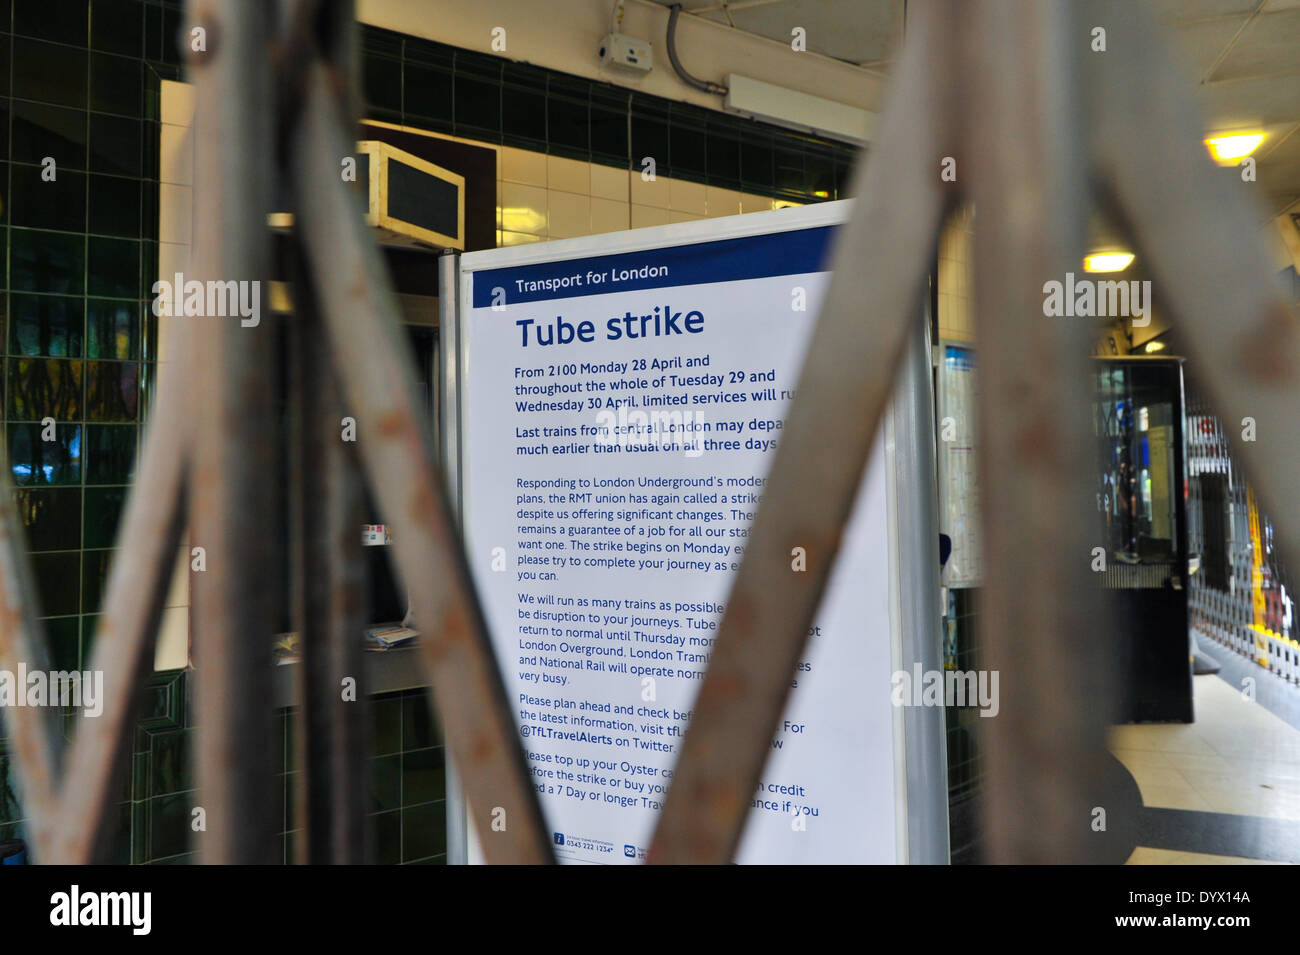 Covent Garden, London, UK. 26th April 2014. The notice inside Covent Garden station alerting travellers of next weeks 48hr tube strike. Credit:  Matthew Chattle/Alamy Live News - Stock Image